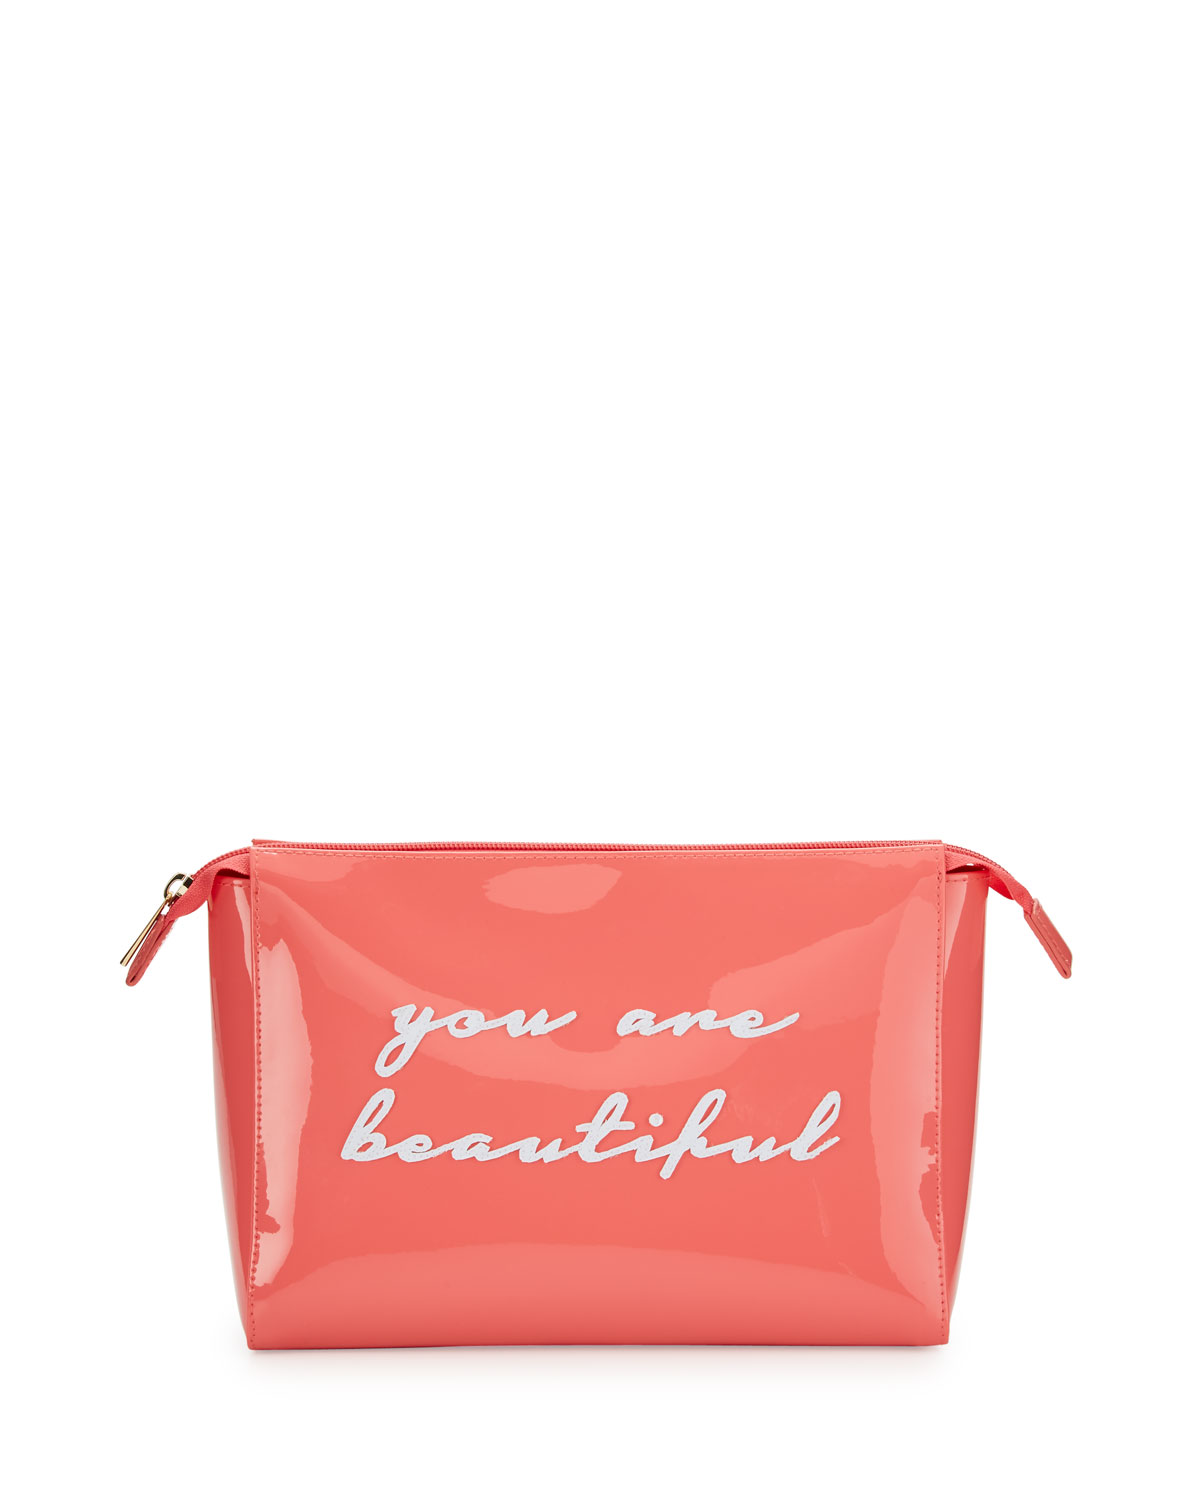 Betty Small Cosmetics Bag, Watermelon